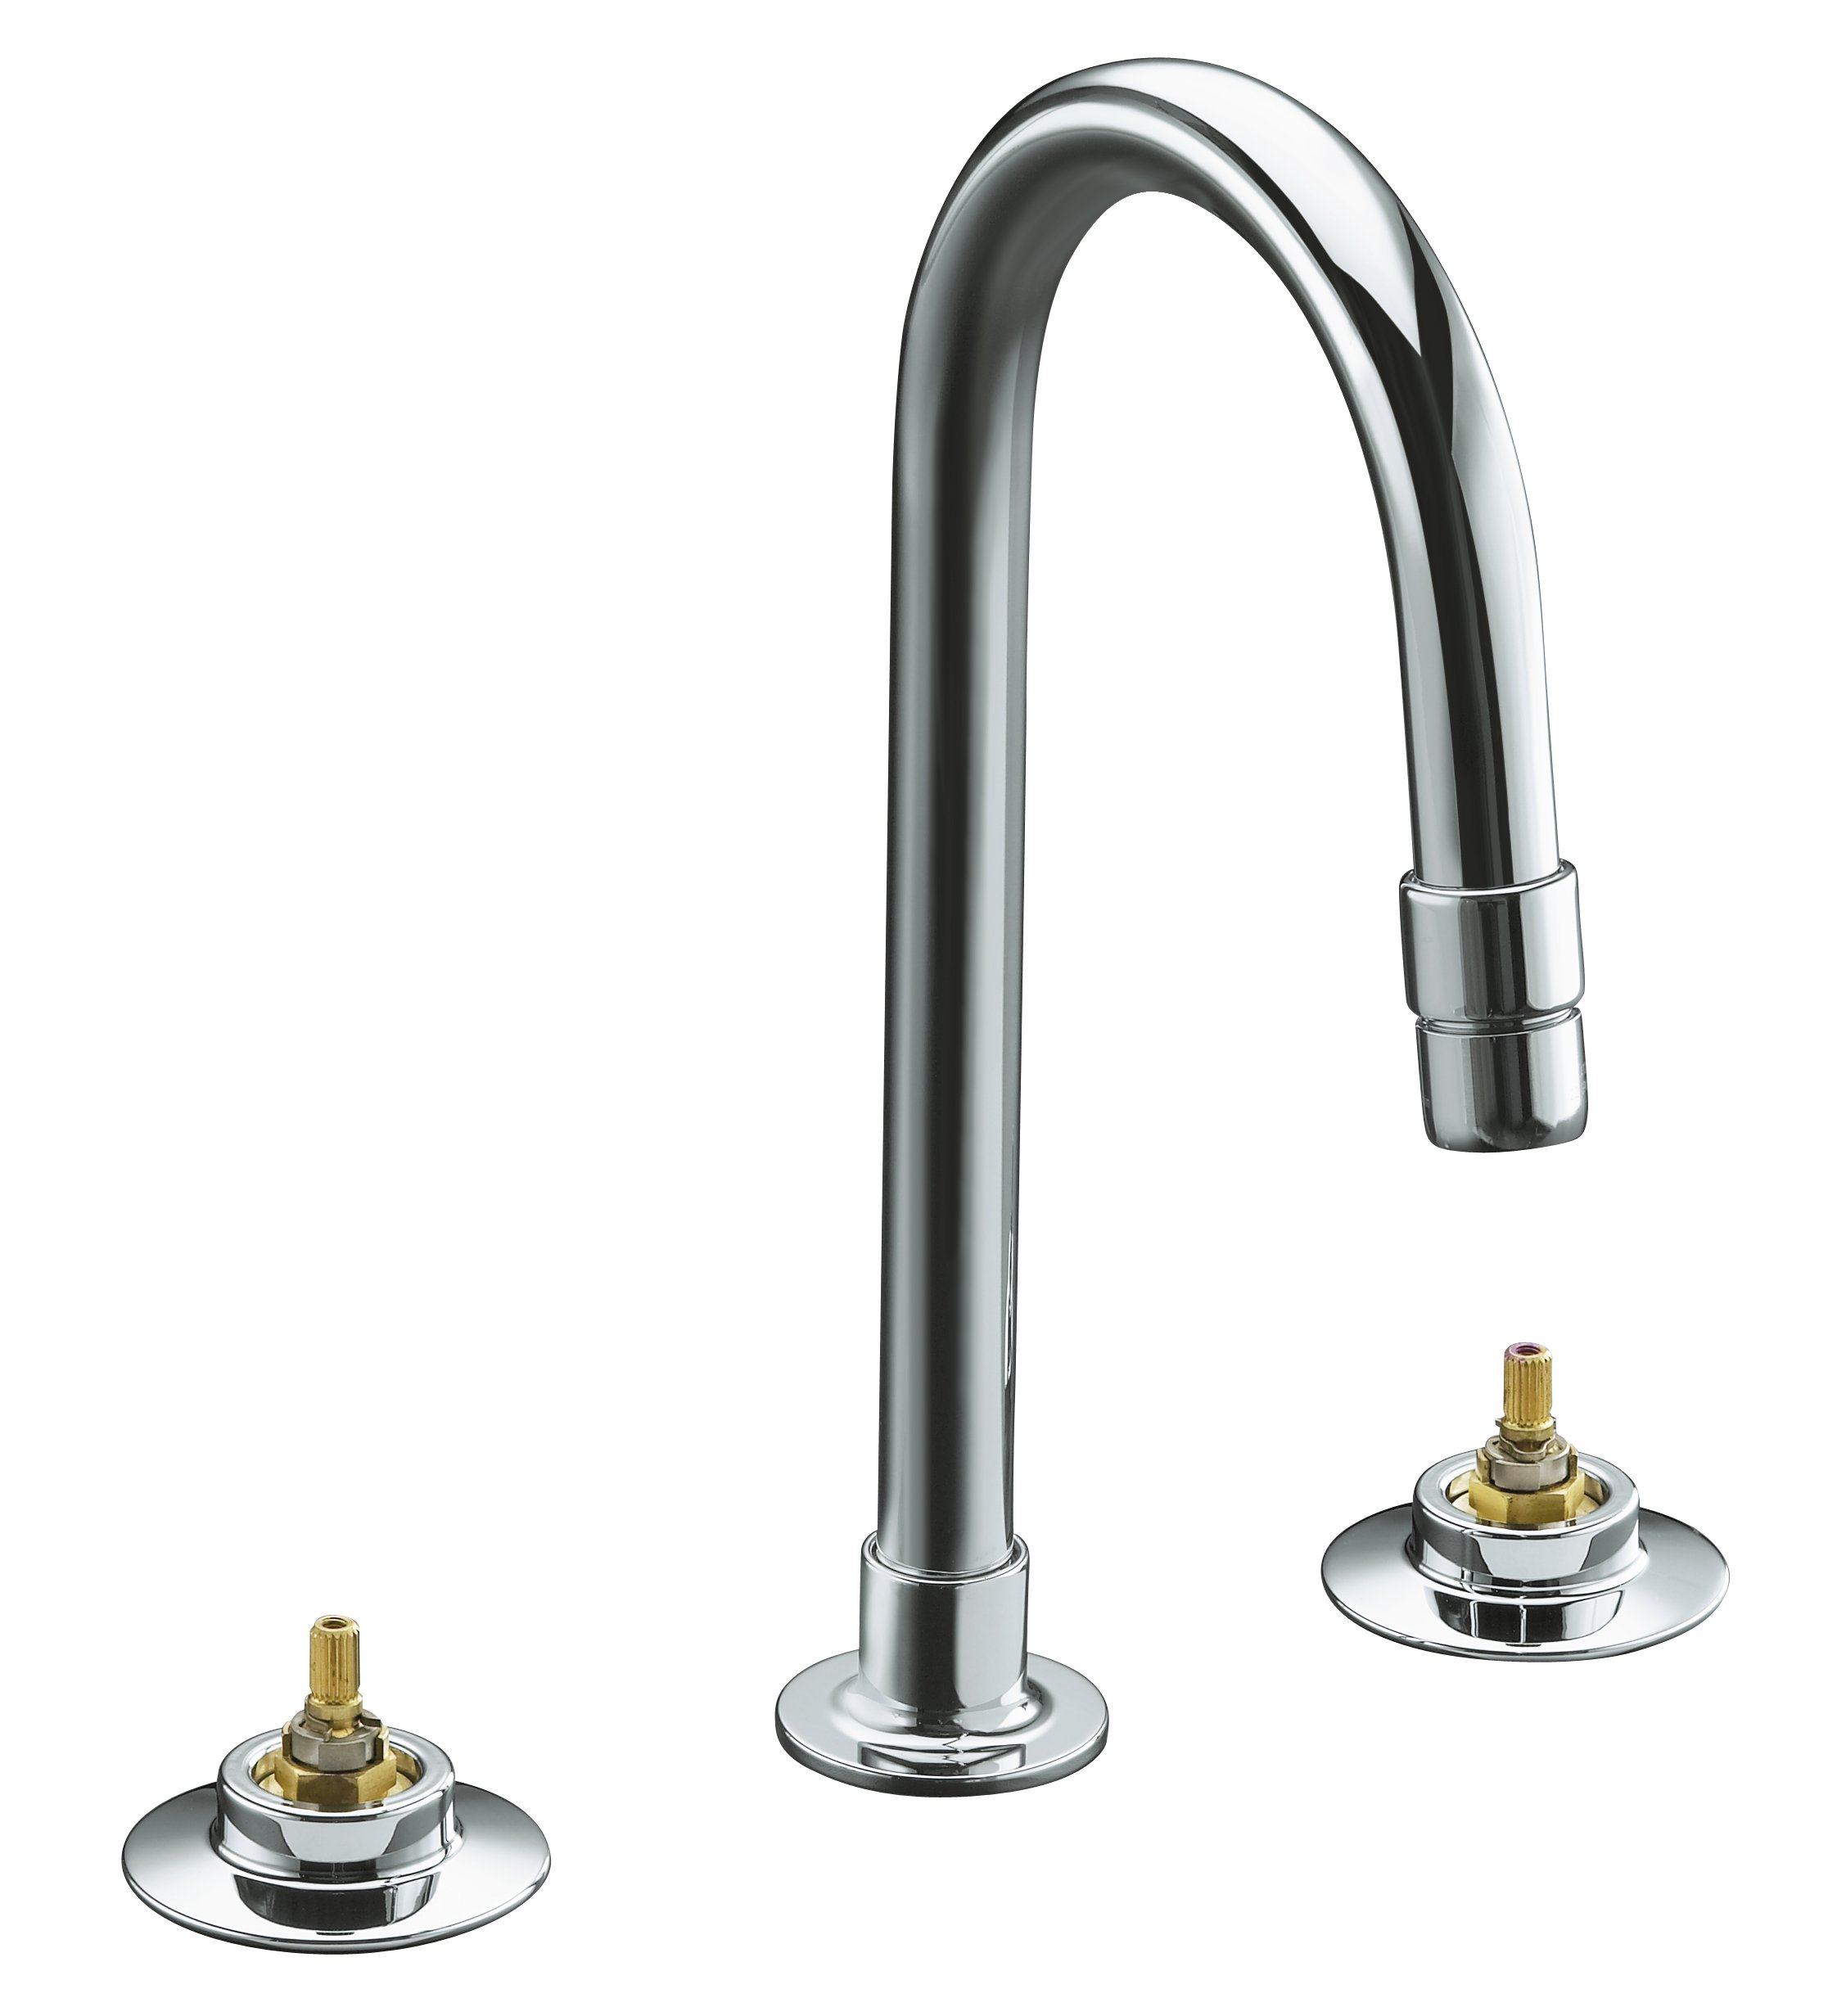 KOHLER K-7303-KE-CP Triton Widespread Lavatory Faucet with Vandal-Resistant Aerator and Rigid Connections, Requires Handles, Polished Chrome